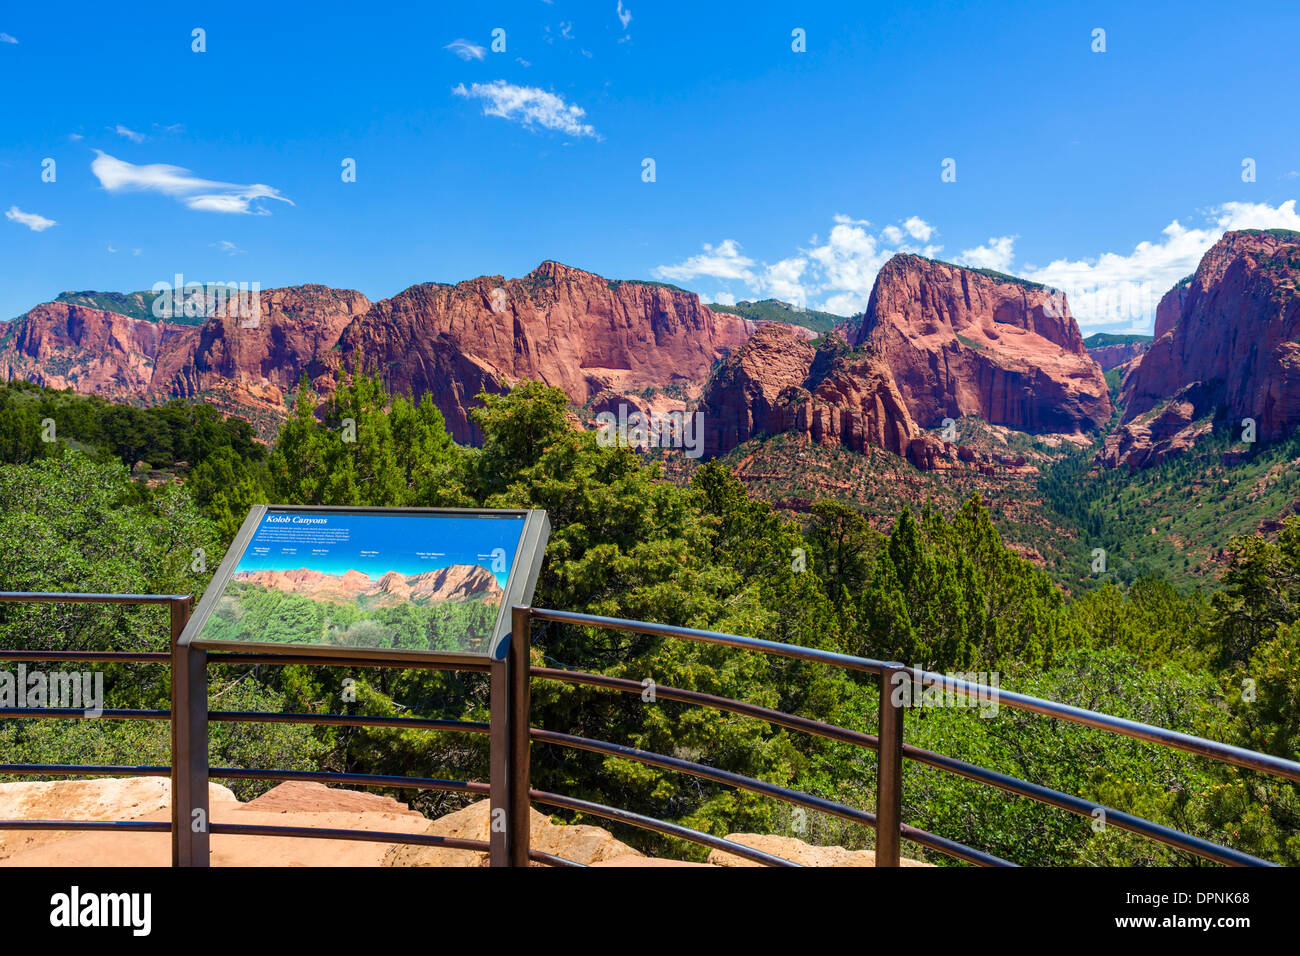 Overlook in Kolob Canyons section of Zion National Park, Utah, USA - Stock Image